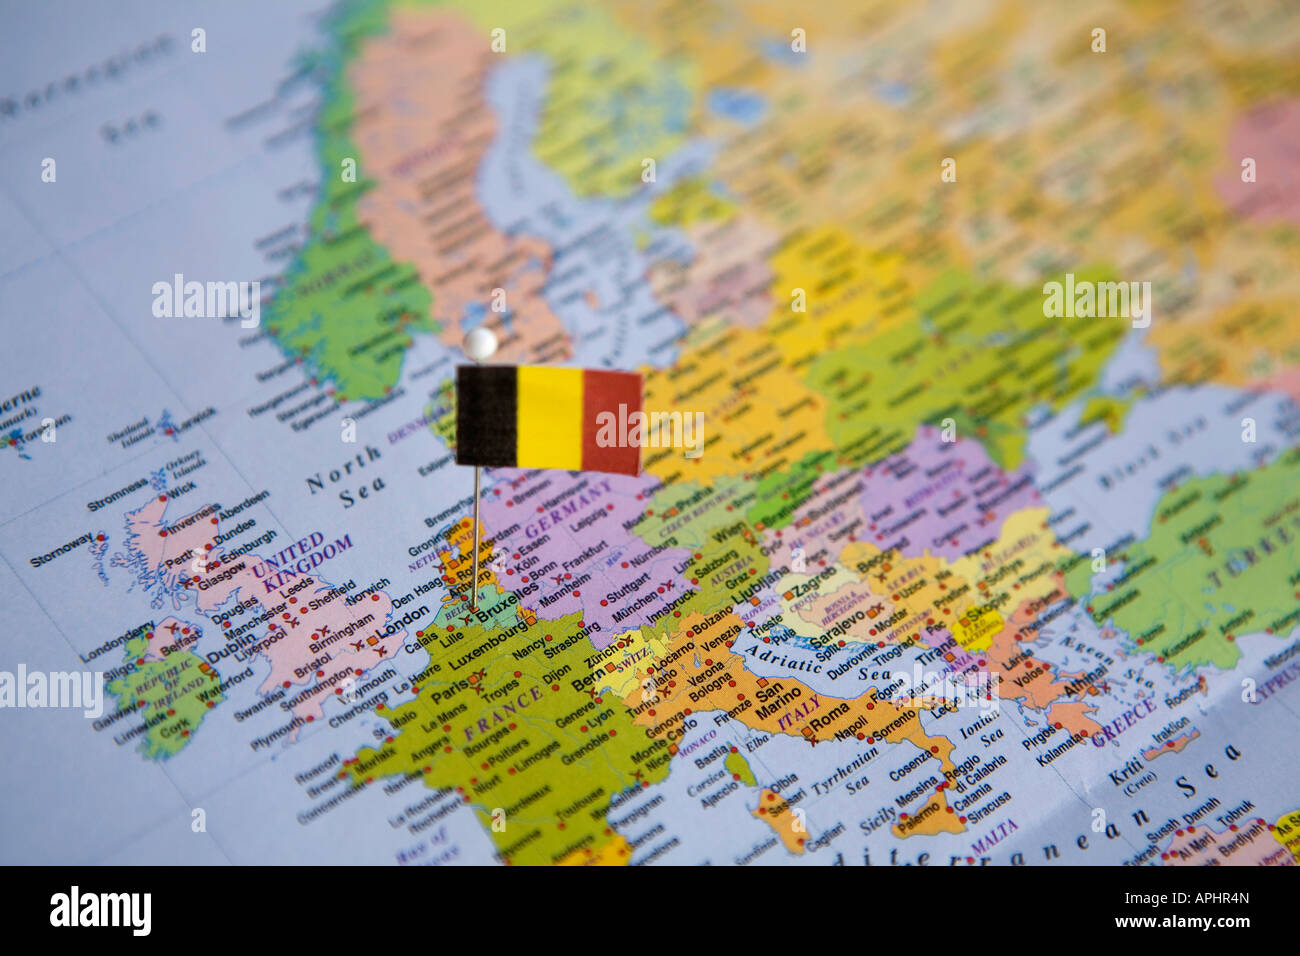 Brussels map stock photos brussels map stock images alamy flag pin placed on world map in the capital of belgium brussels stock image gumiabroncs Image collections